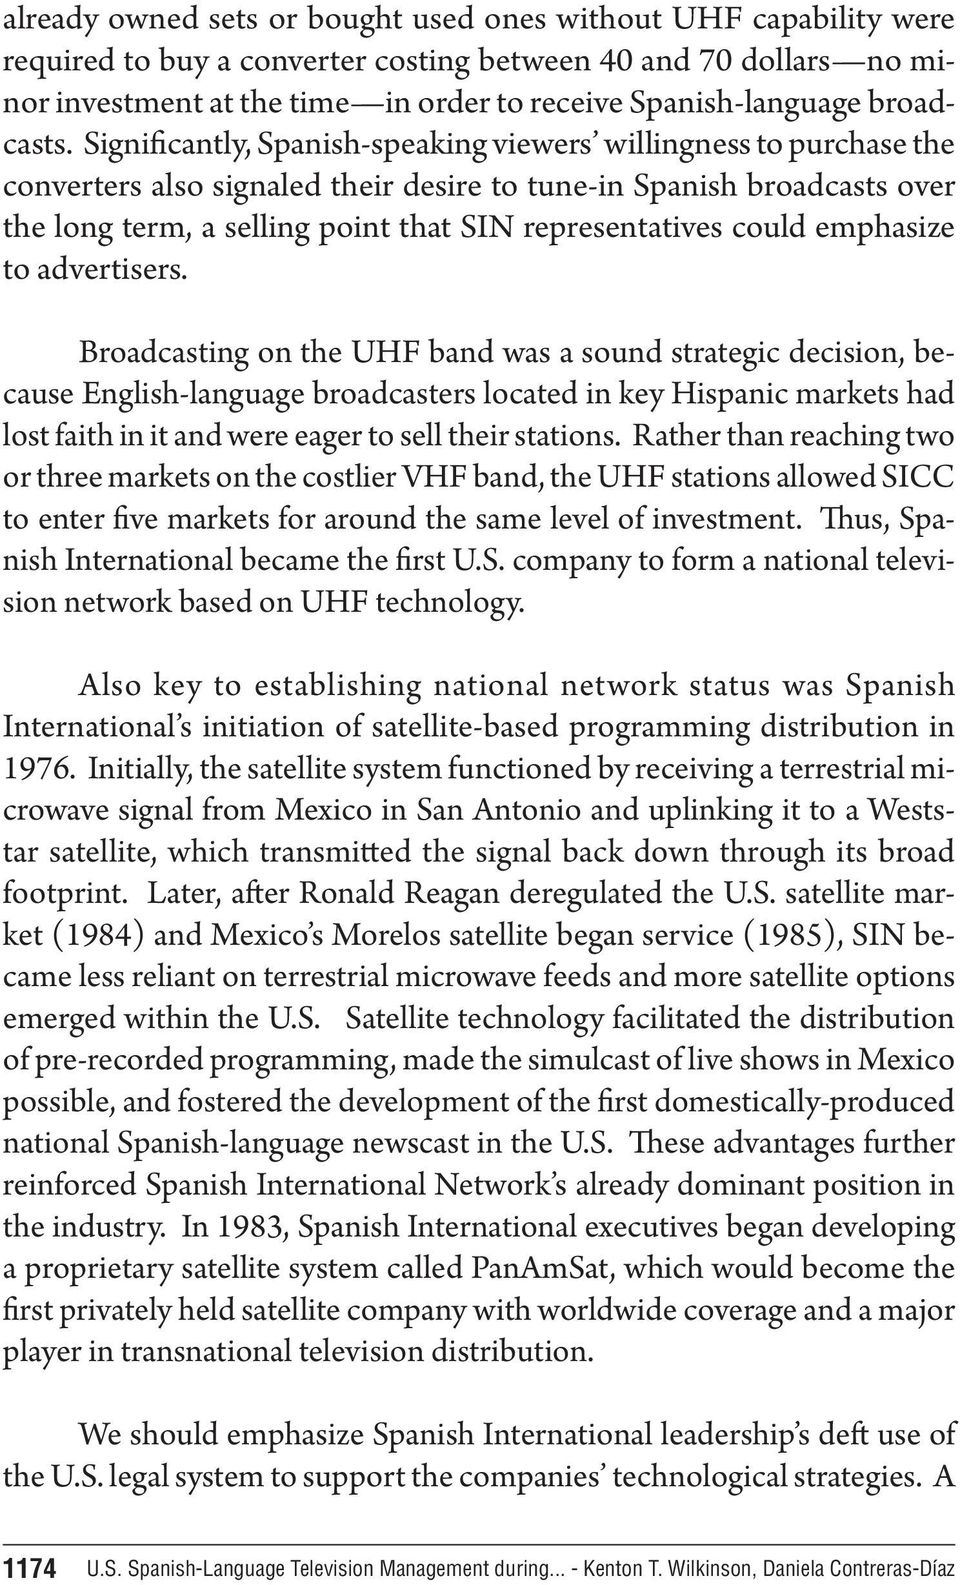 Significantly, Spanish-speaking viewers willingness to purchase the converters also signaled their desire to tune-in Spanish broadcasts over the long term, a selling point that SIN representatives